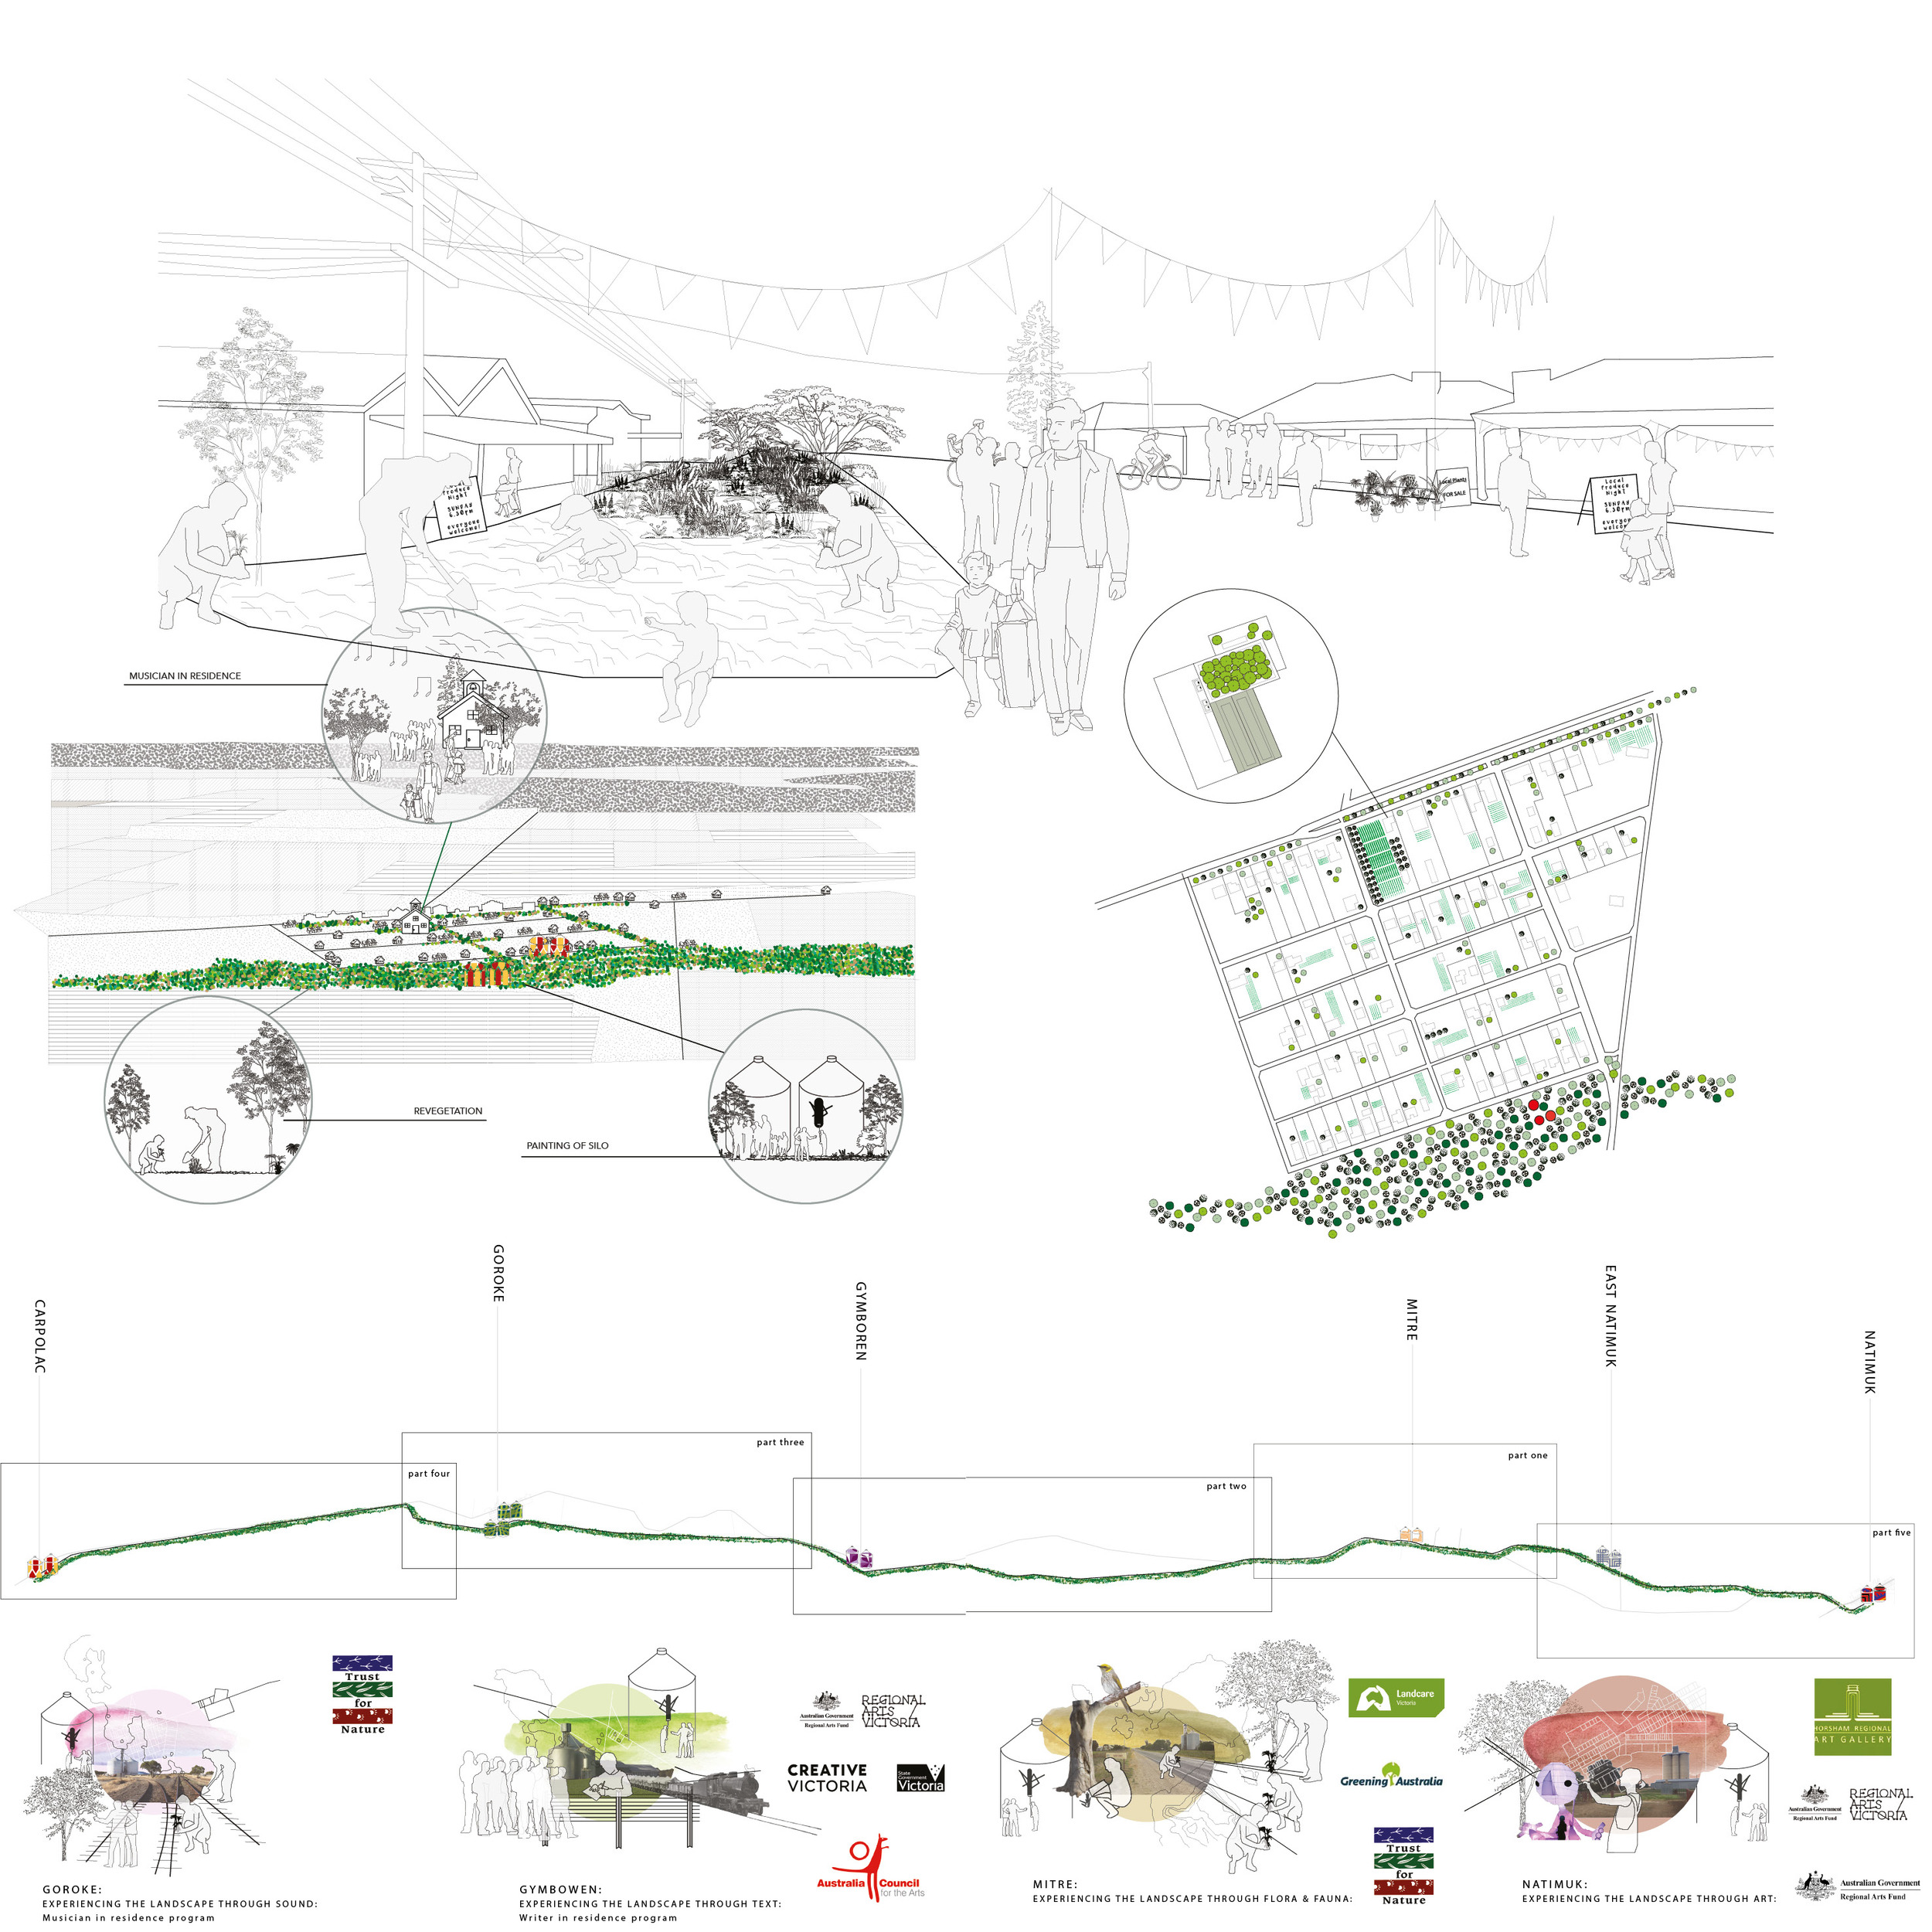 A series of 'artist in residency' programs occur consecutively along the Carpolac trail, inviting artists, writers, ecologists, environmental scientists, chefs and musicians to participate in collaborative programs alongside community events which culminate in graphic transformations of the decommissioned silos.